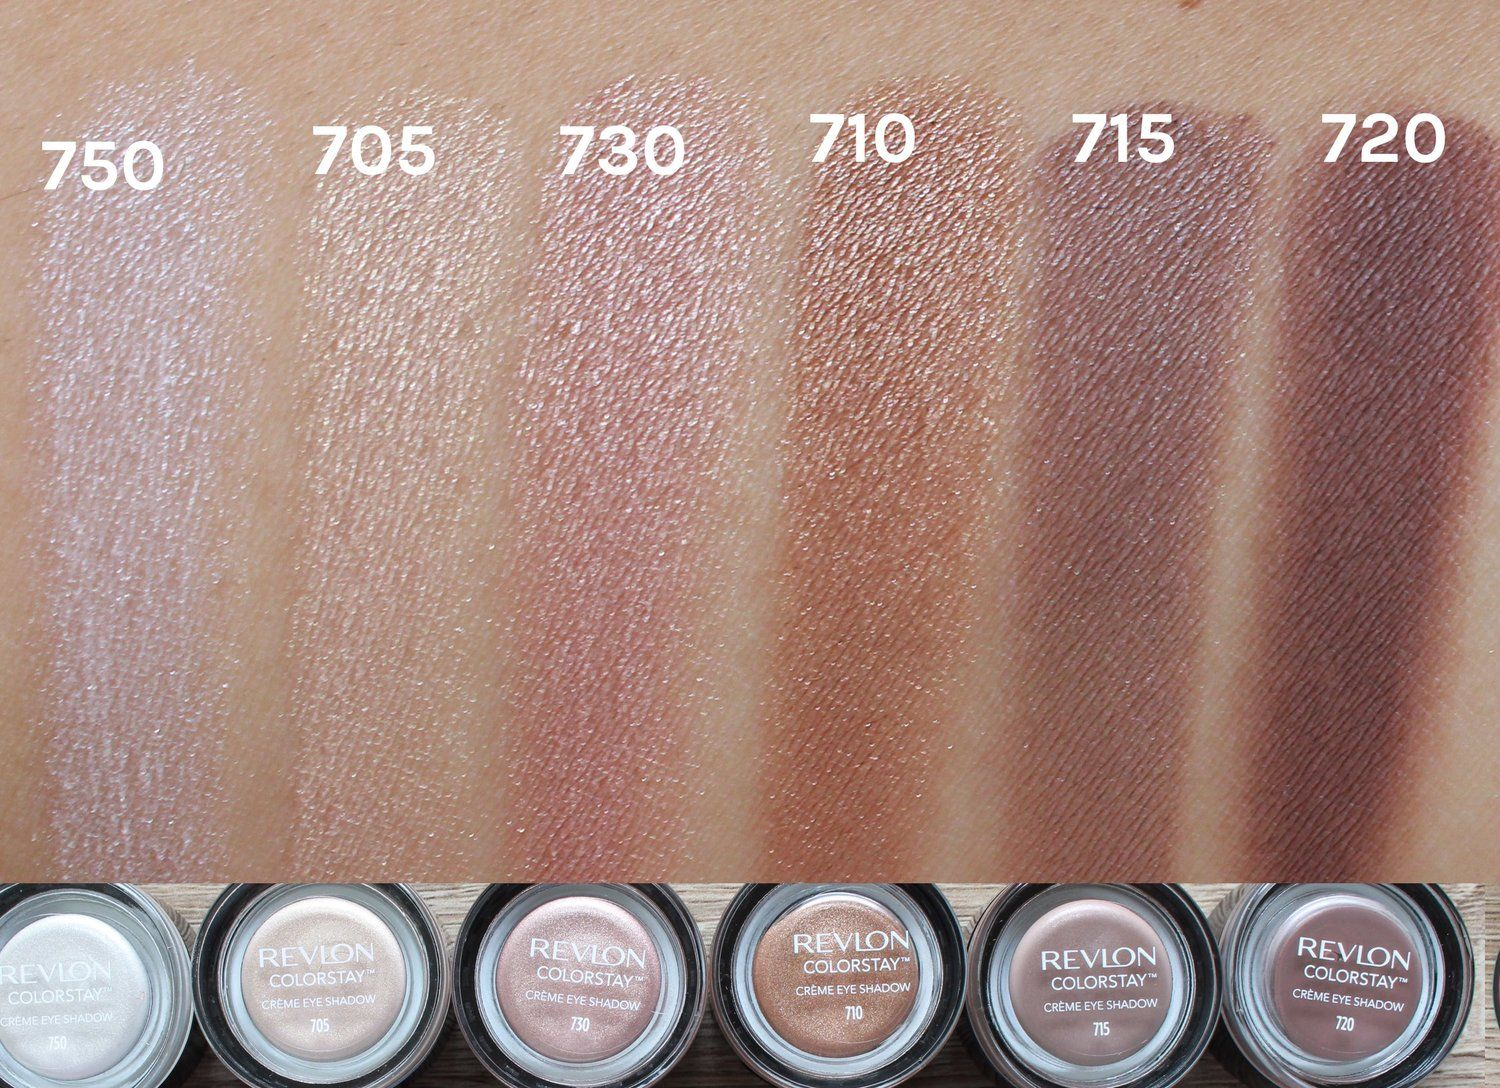 The Revlon Creme Eyeshadow Is A Lazy Girl Must Have It S Long Wearing Too Project Vanity Revlon Cream Eyeshadow Revlon Eyeshadow Eyeshadow